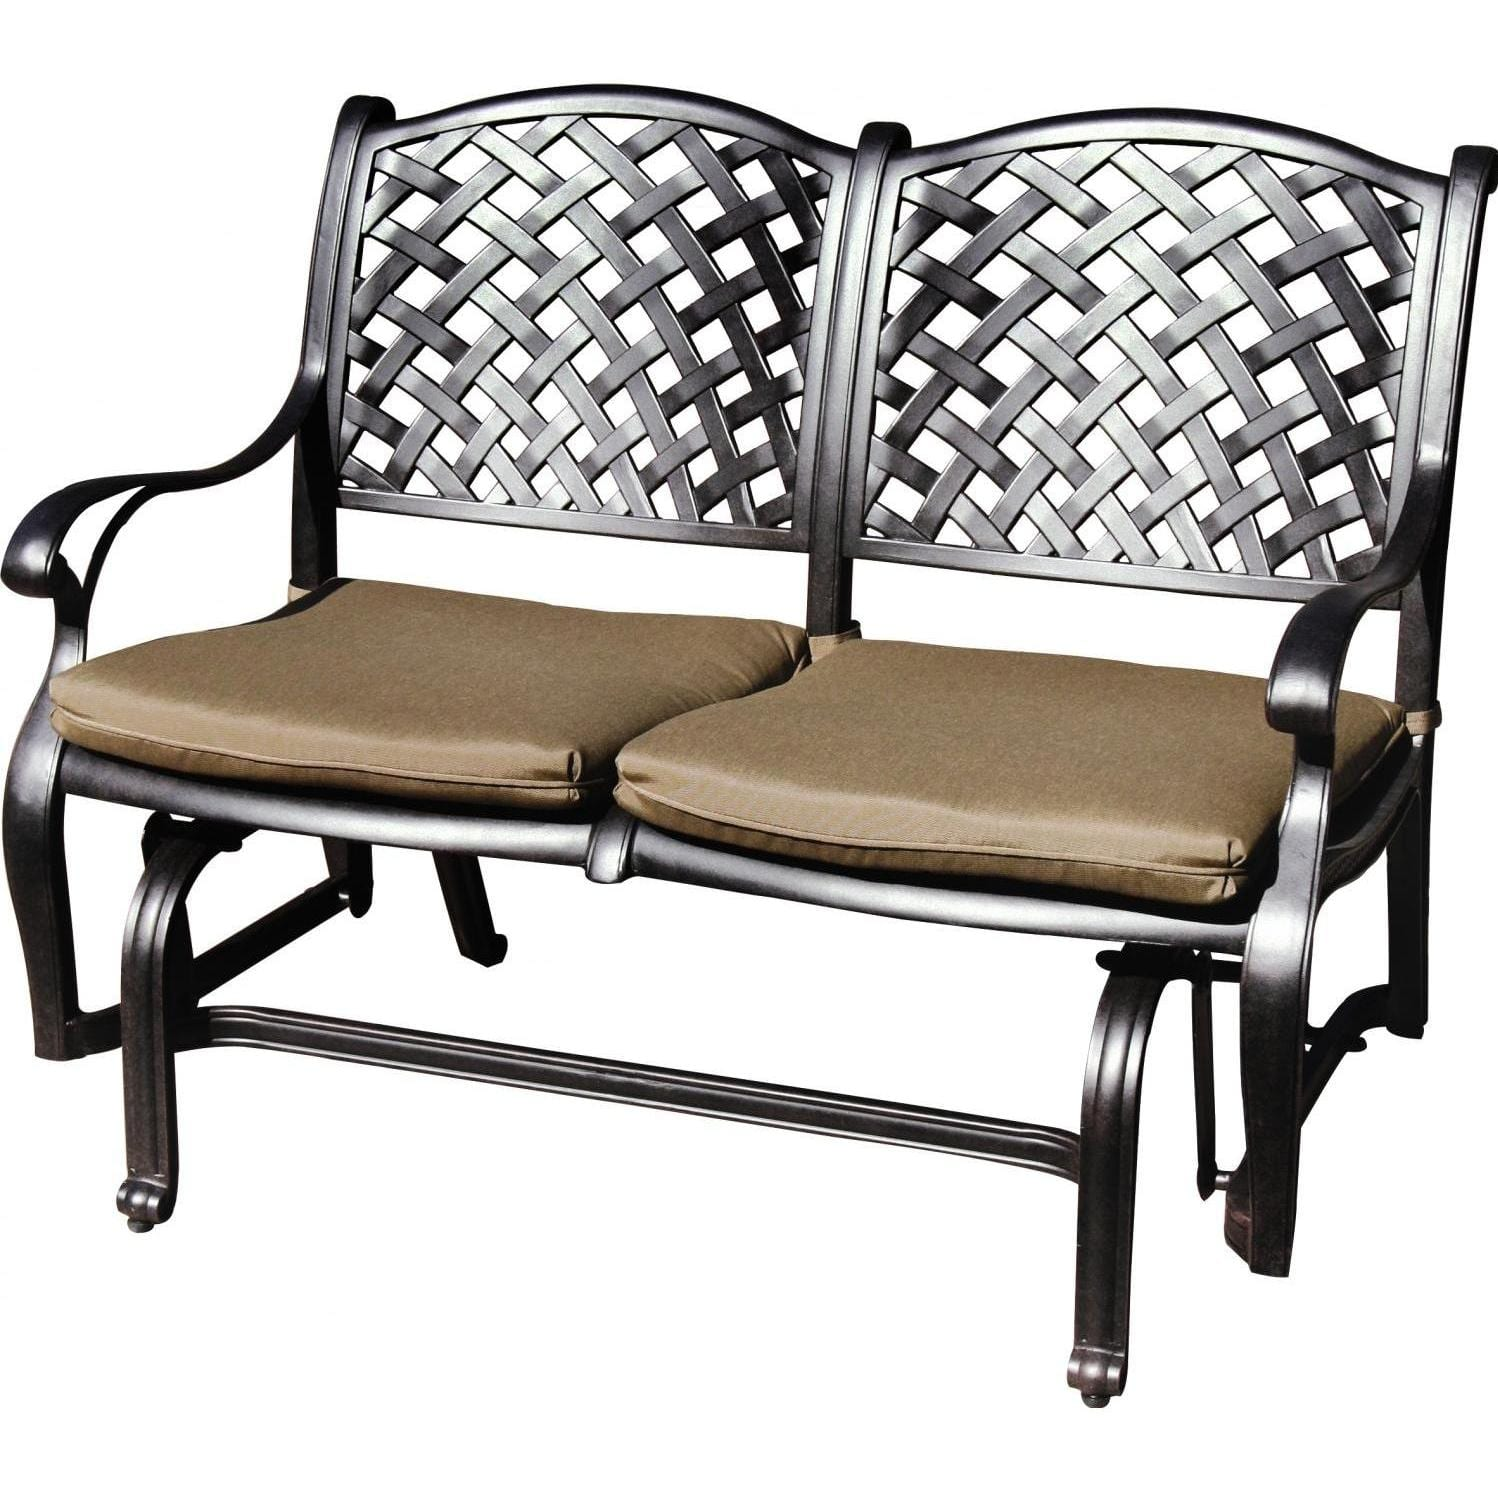 Outdoor Benches & Gliders